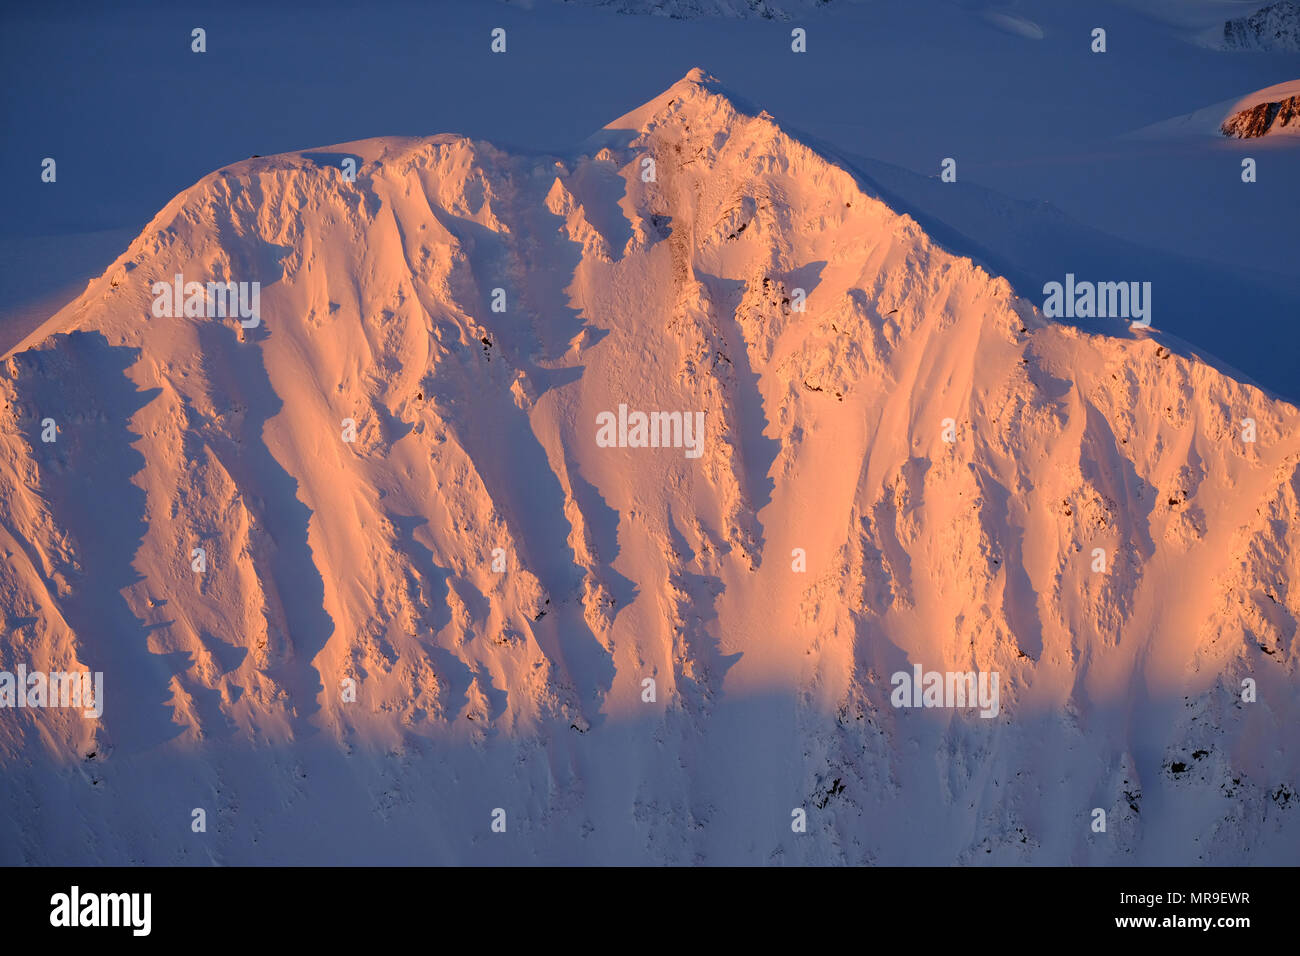 The backside of Whiteout Peak, Chugach Mountains, Alaska - Stock Image